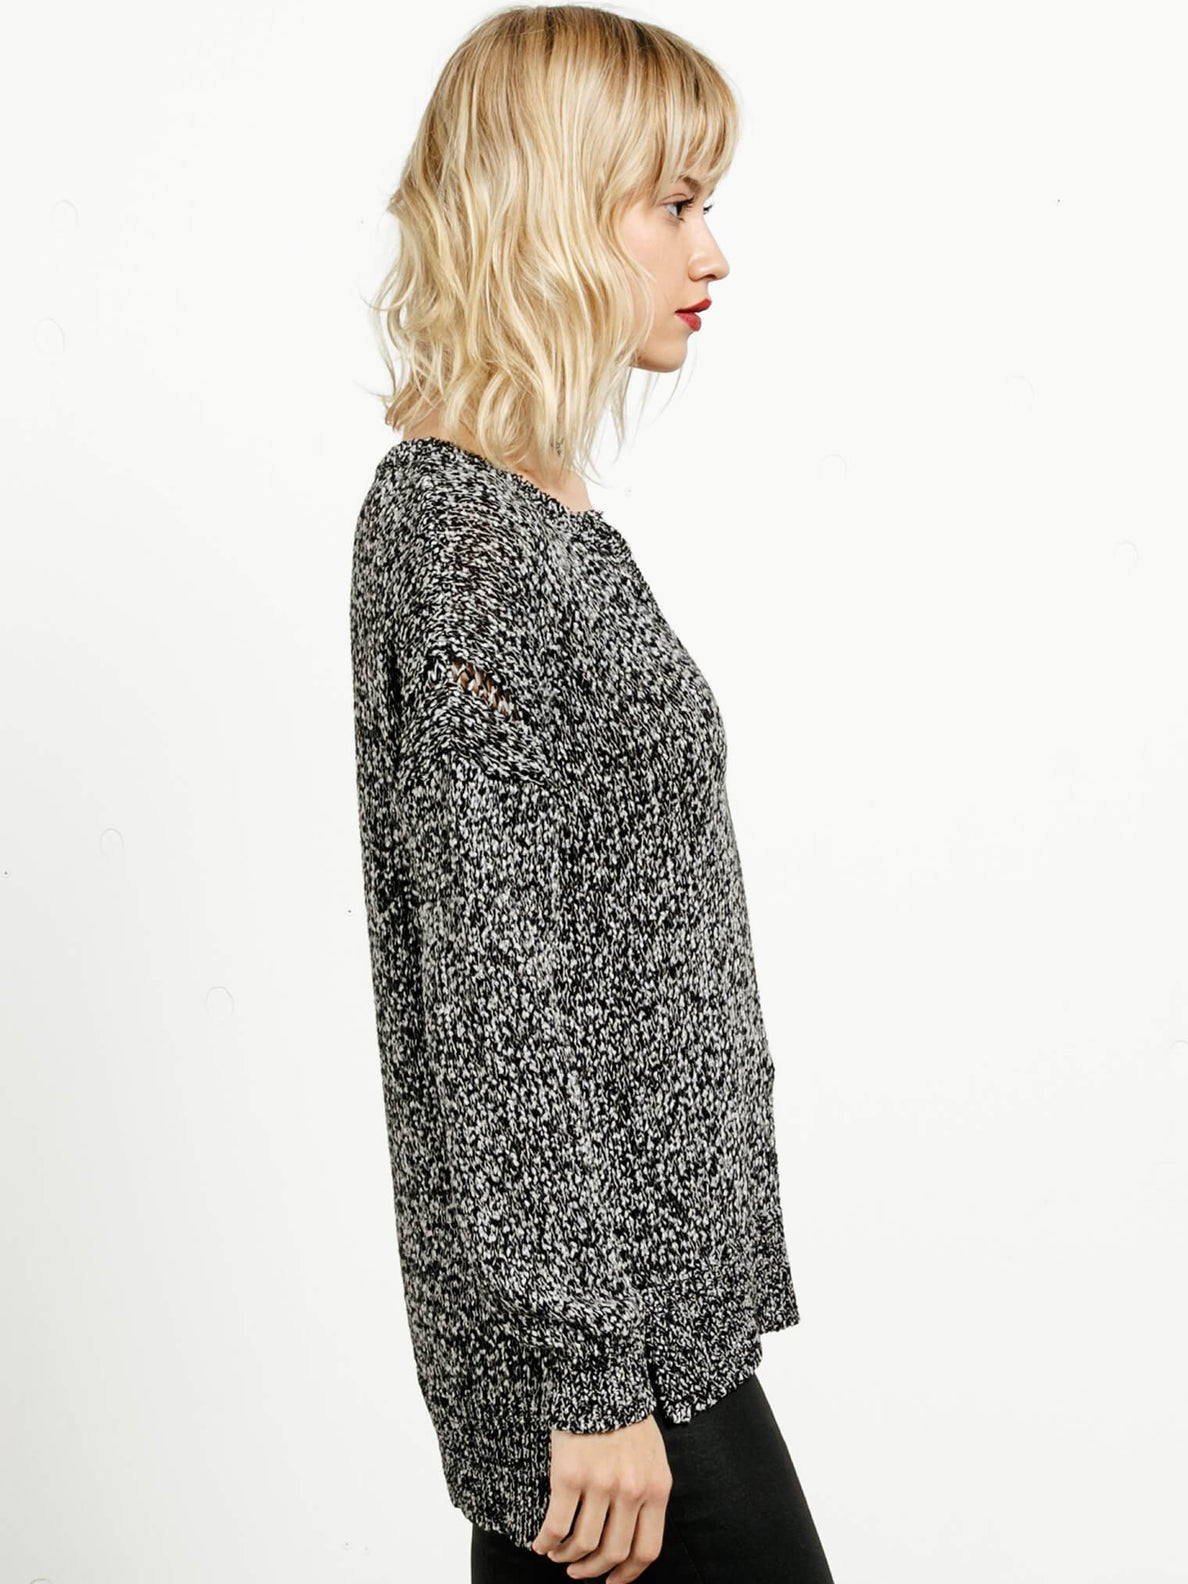 Keepin Cozy Sweater - Black